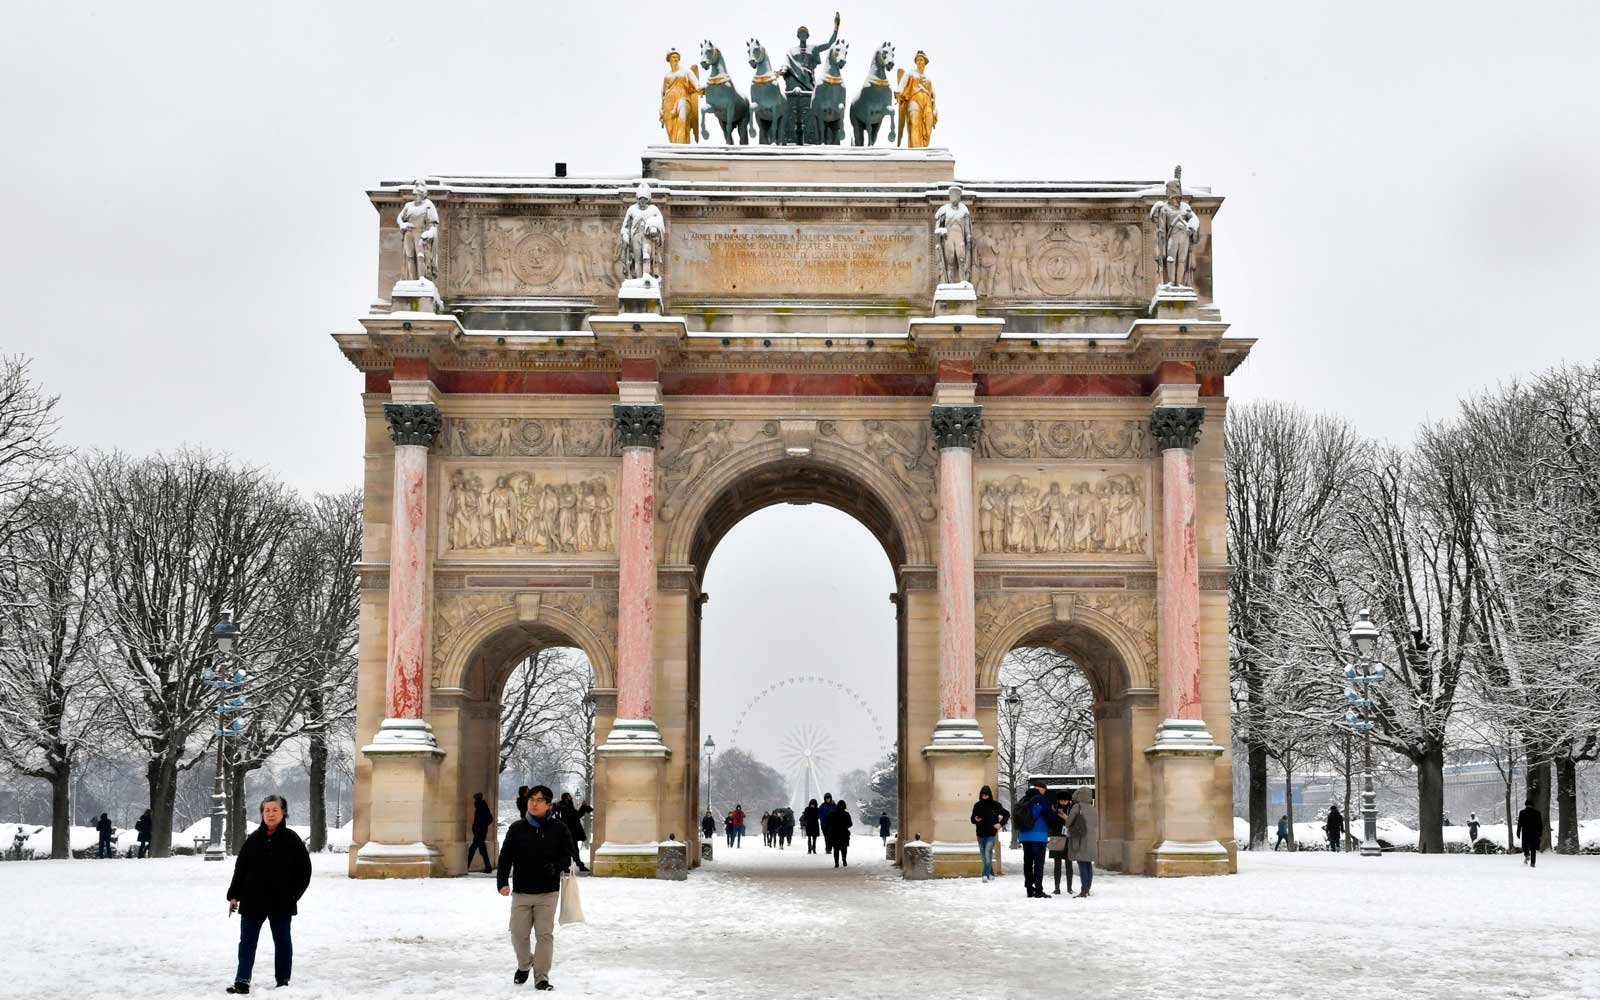 People pass by the Arc de Triomphe du Caroussel as they walk through the snow covered Tuileries garden on February 7, 2018 in Paris.